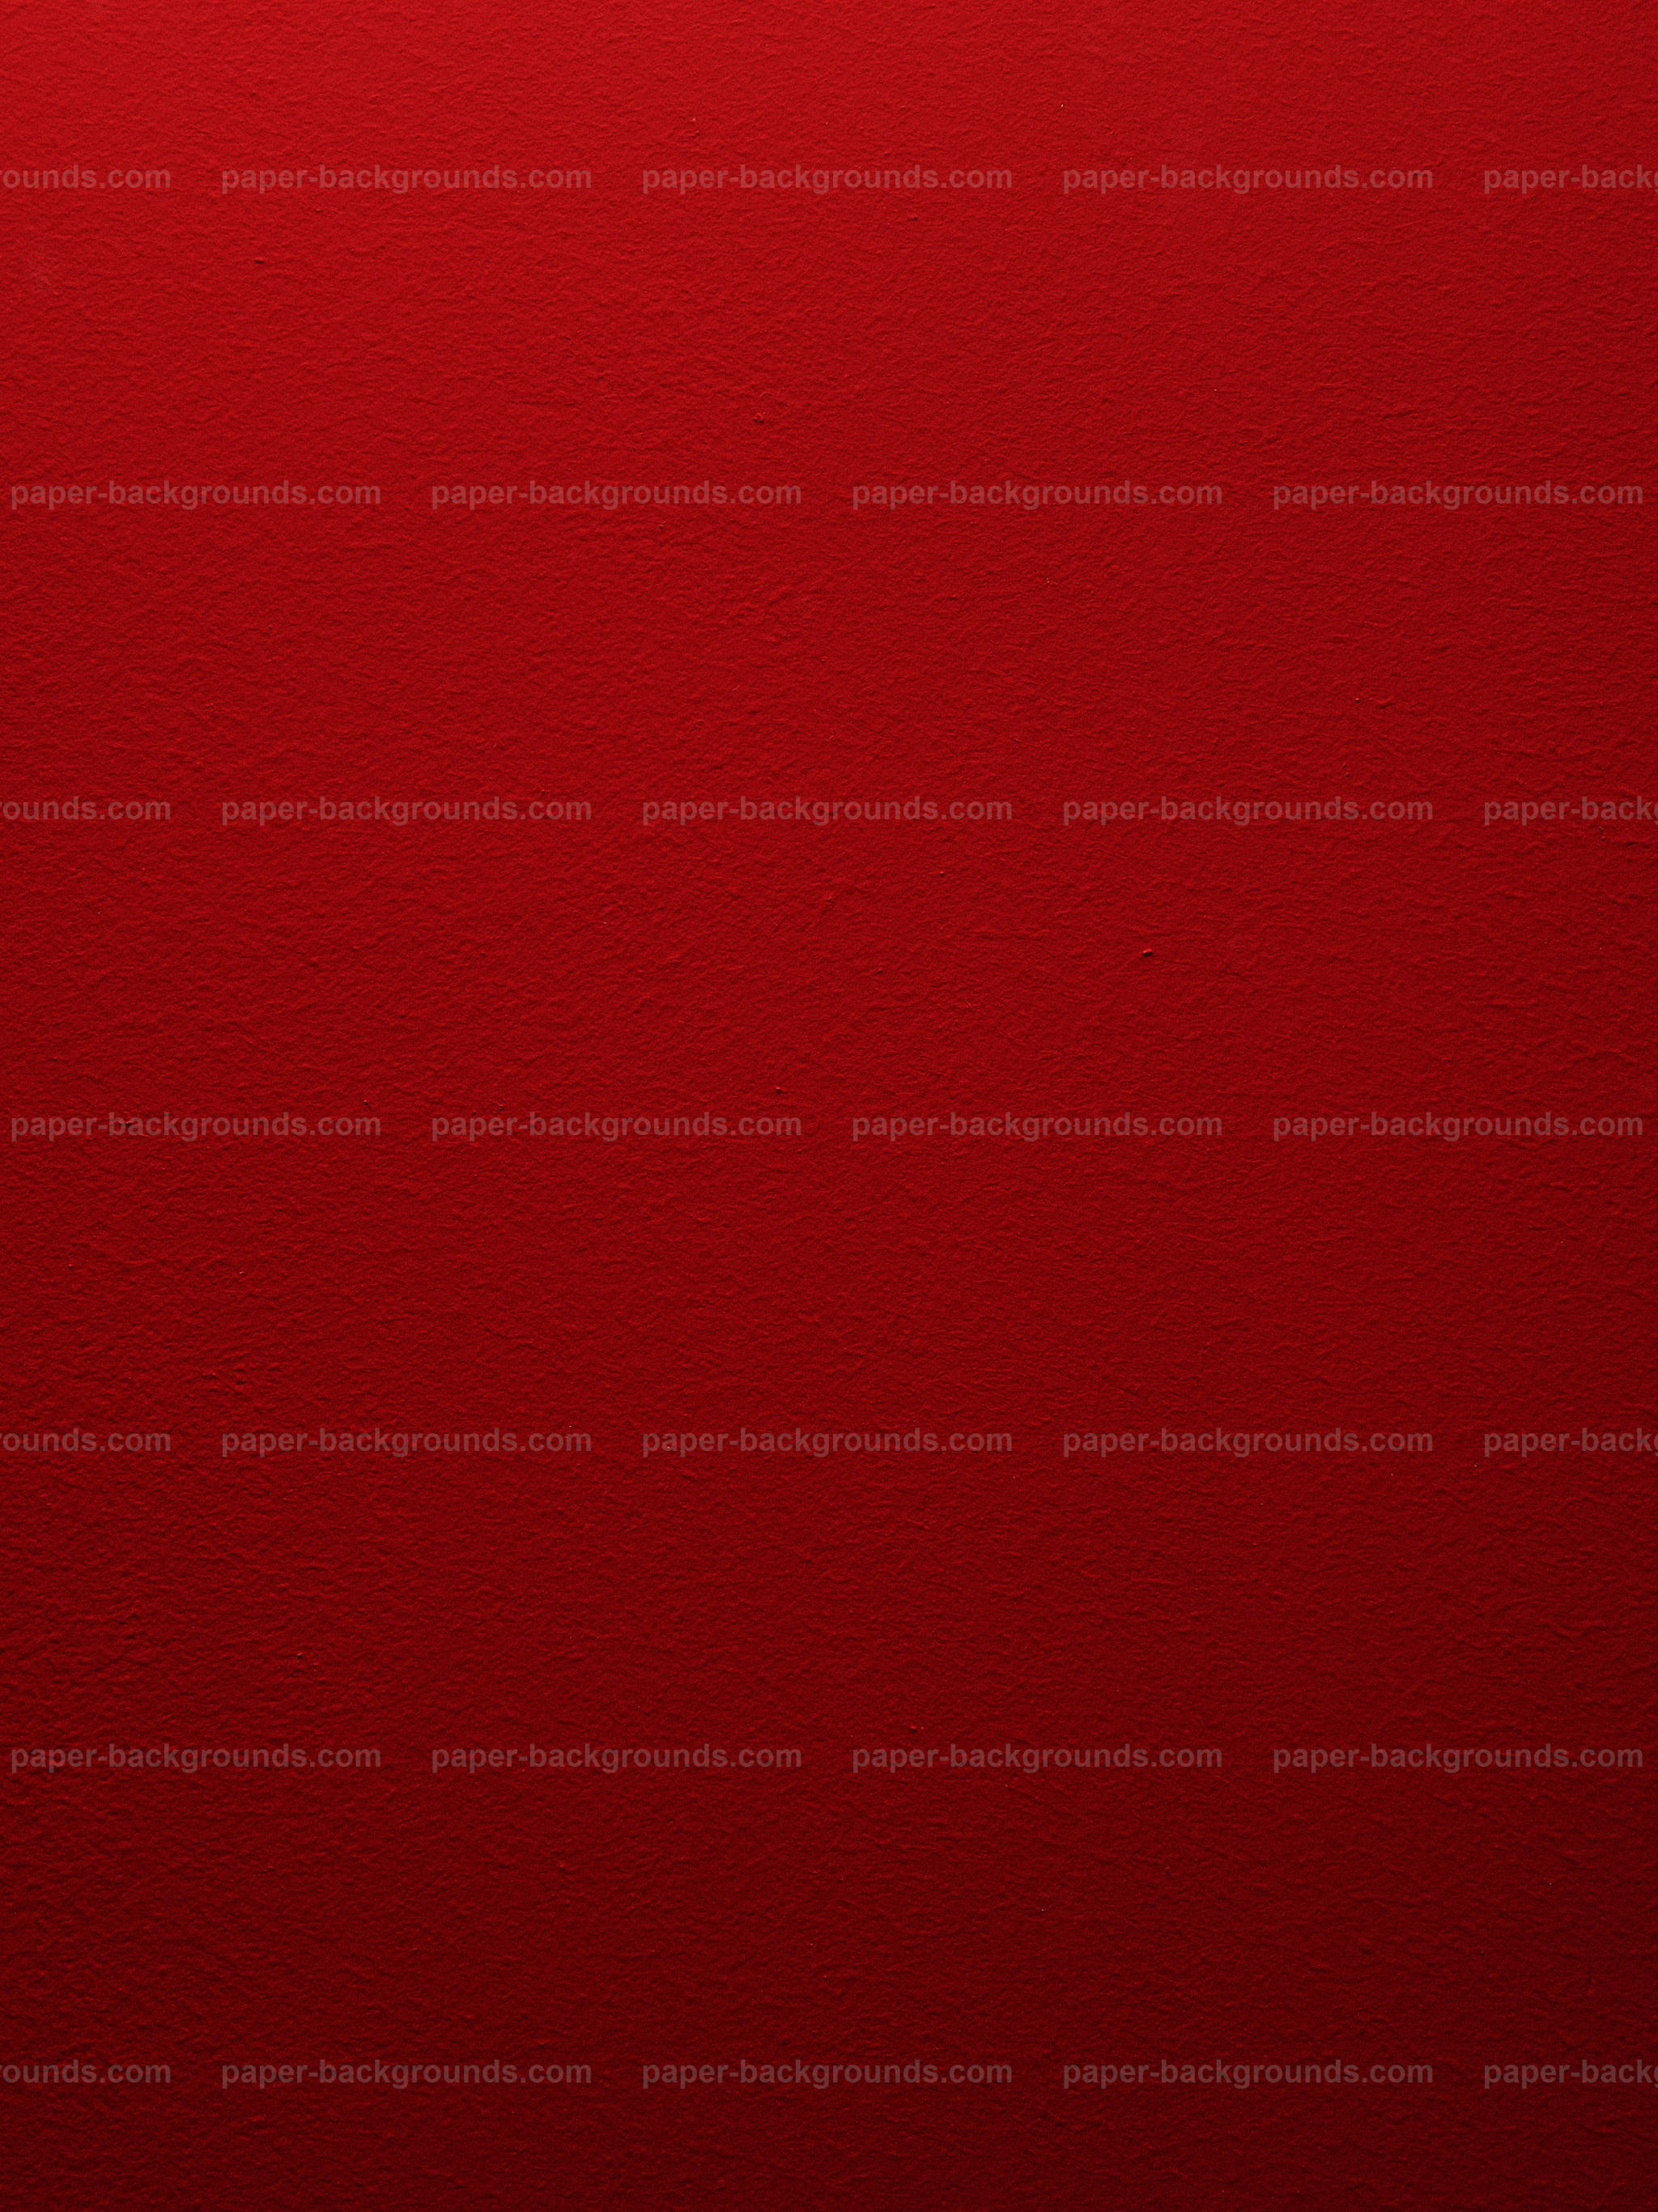 Free download Paper Backgrounds red painted wall texture